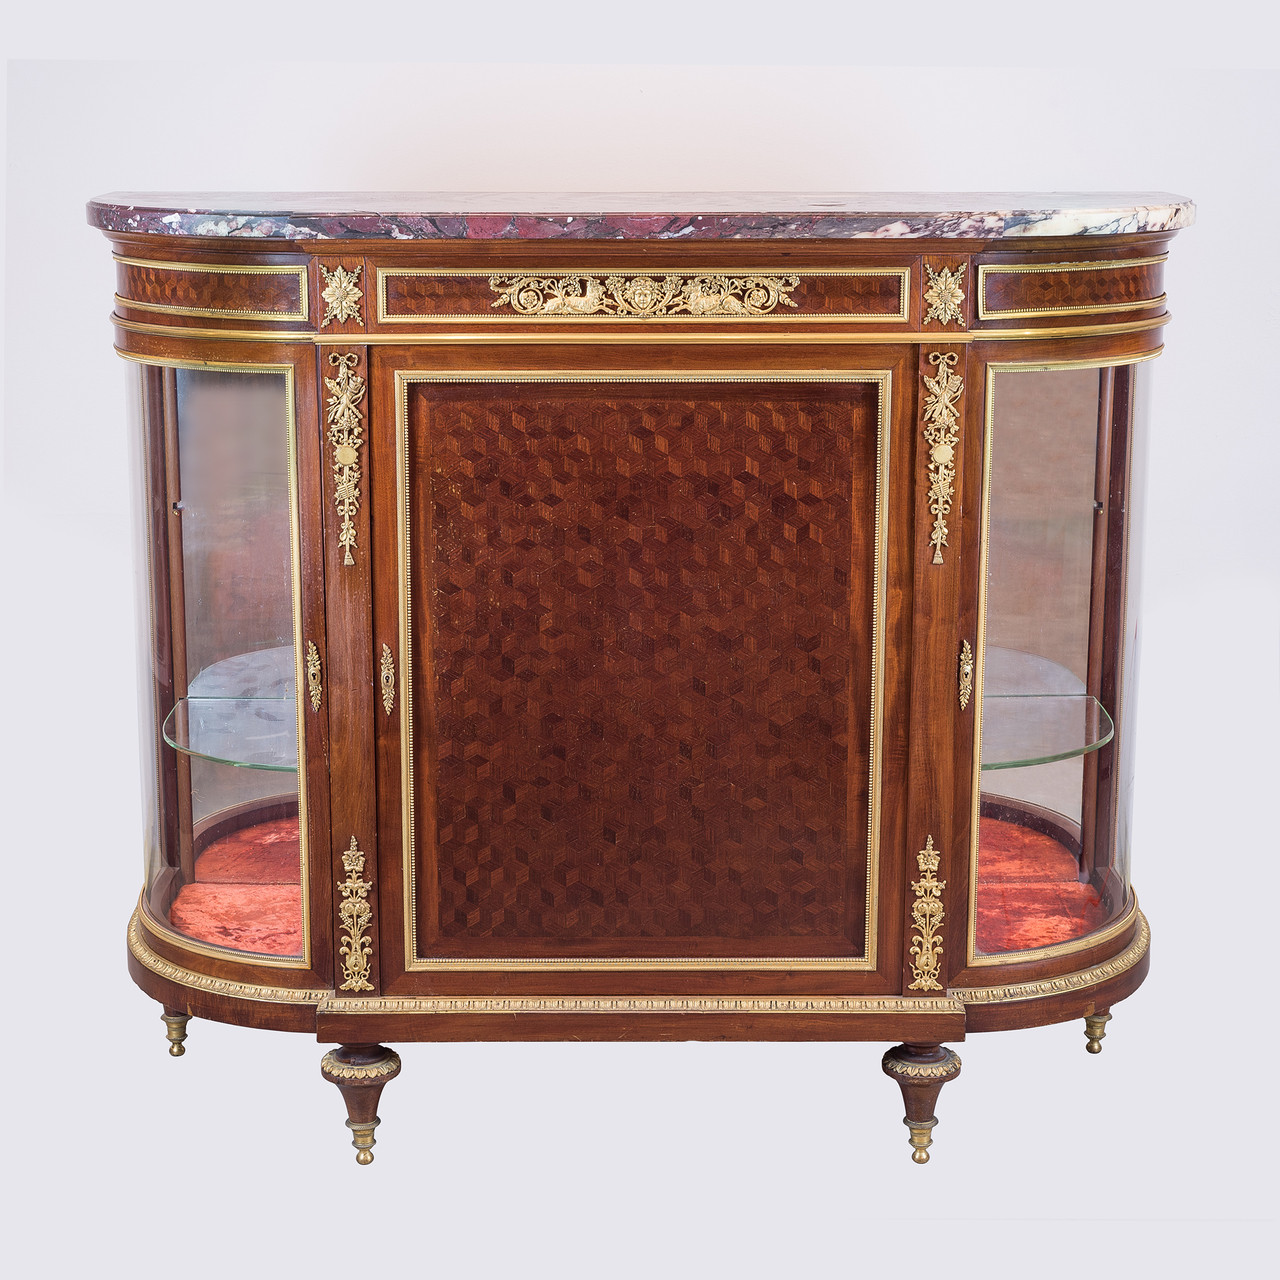 Meuble Louis 16 Exceptional Louis Xvi Style Gilt Bronze Mounted Parquetry Meuble D